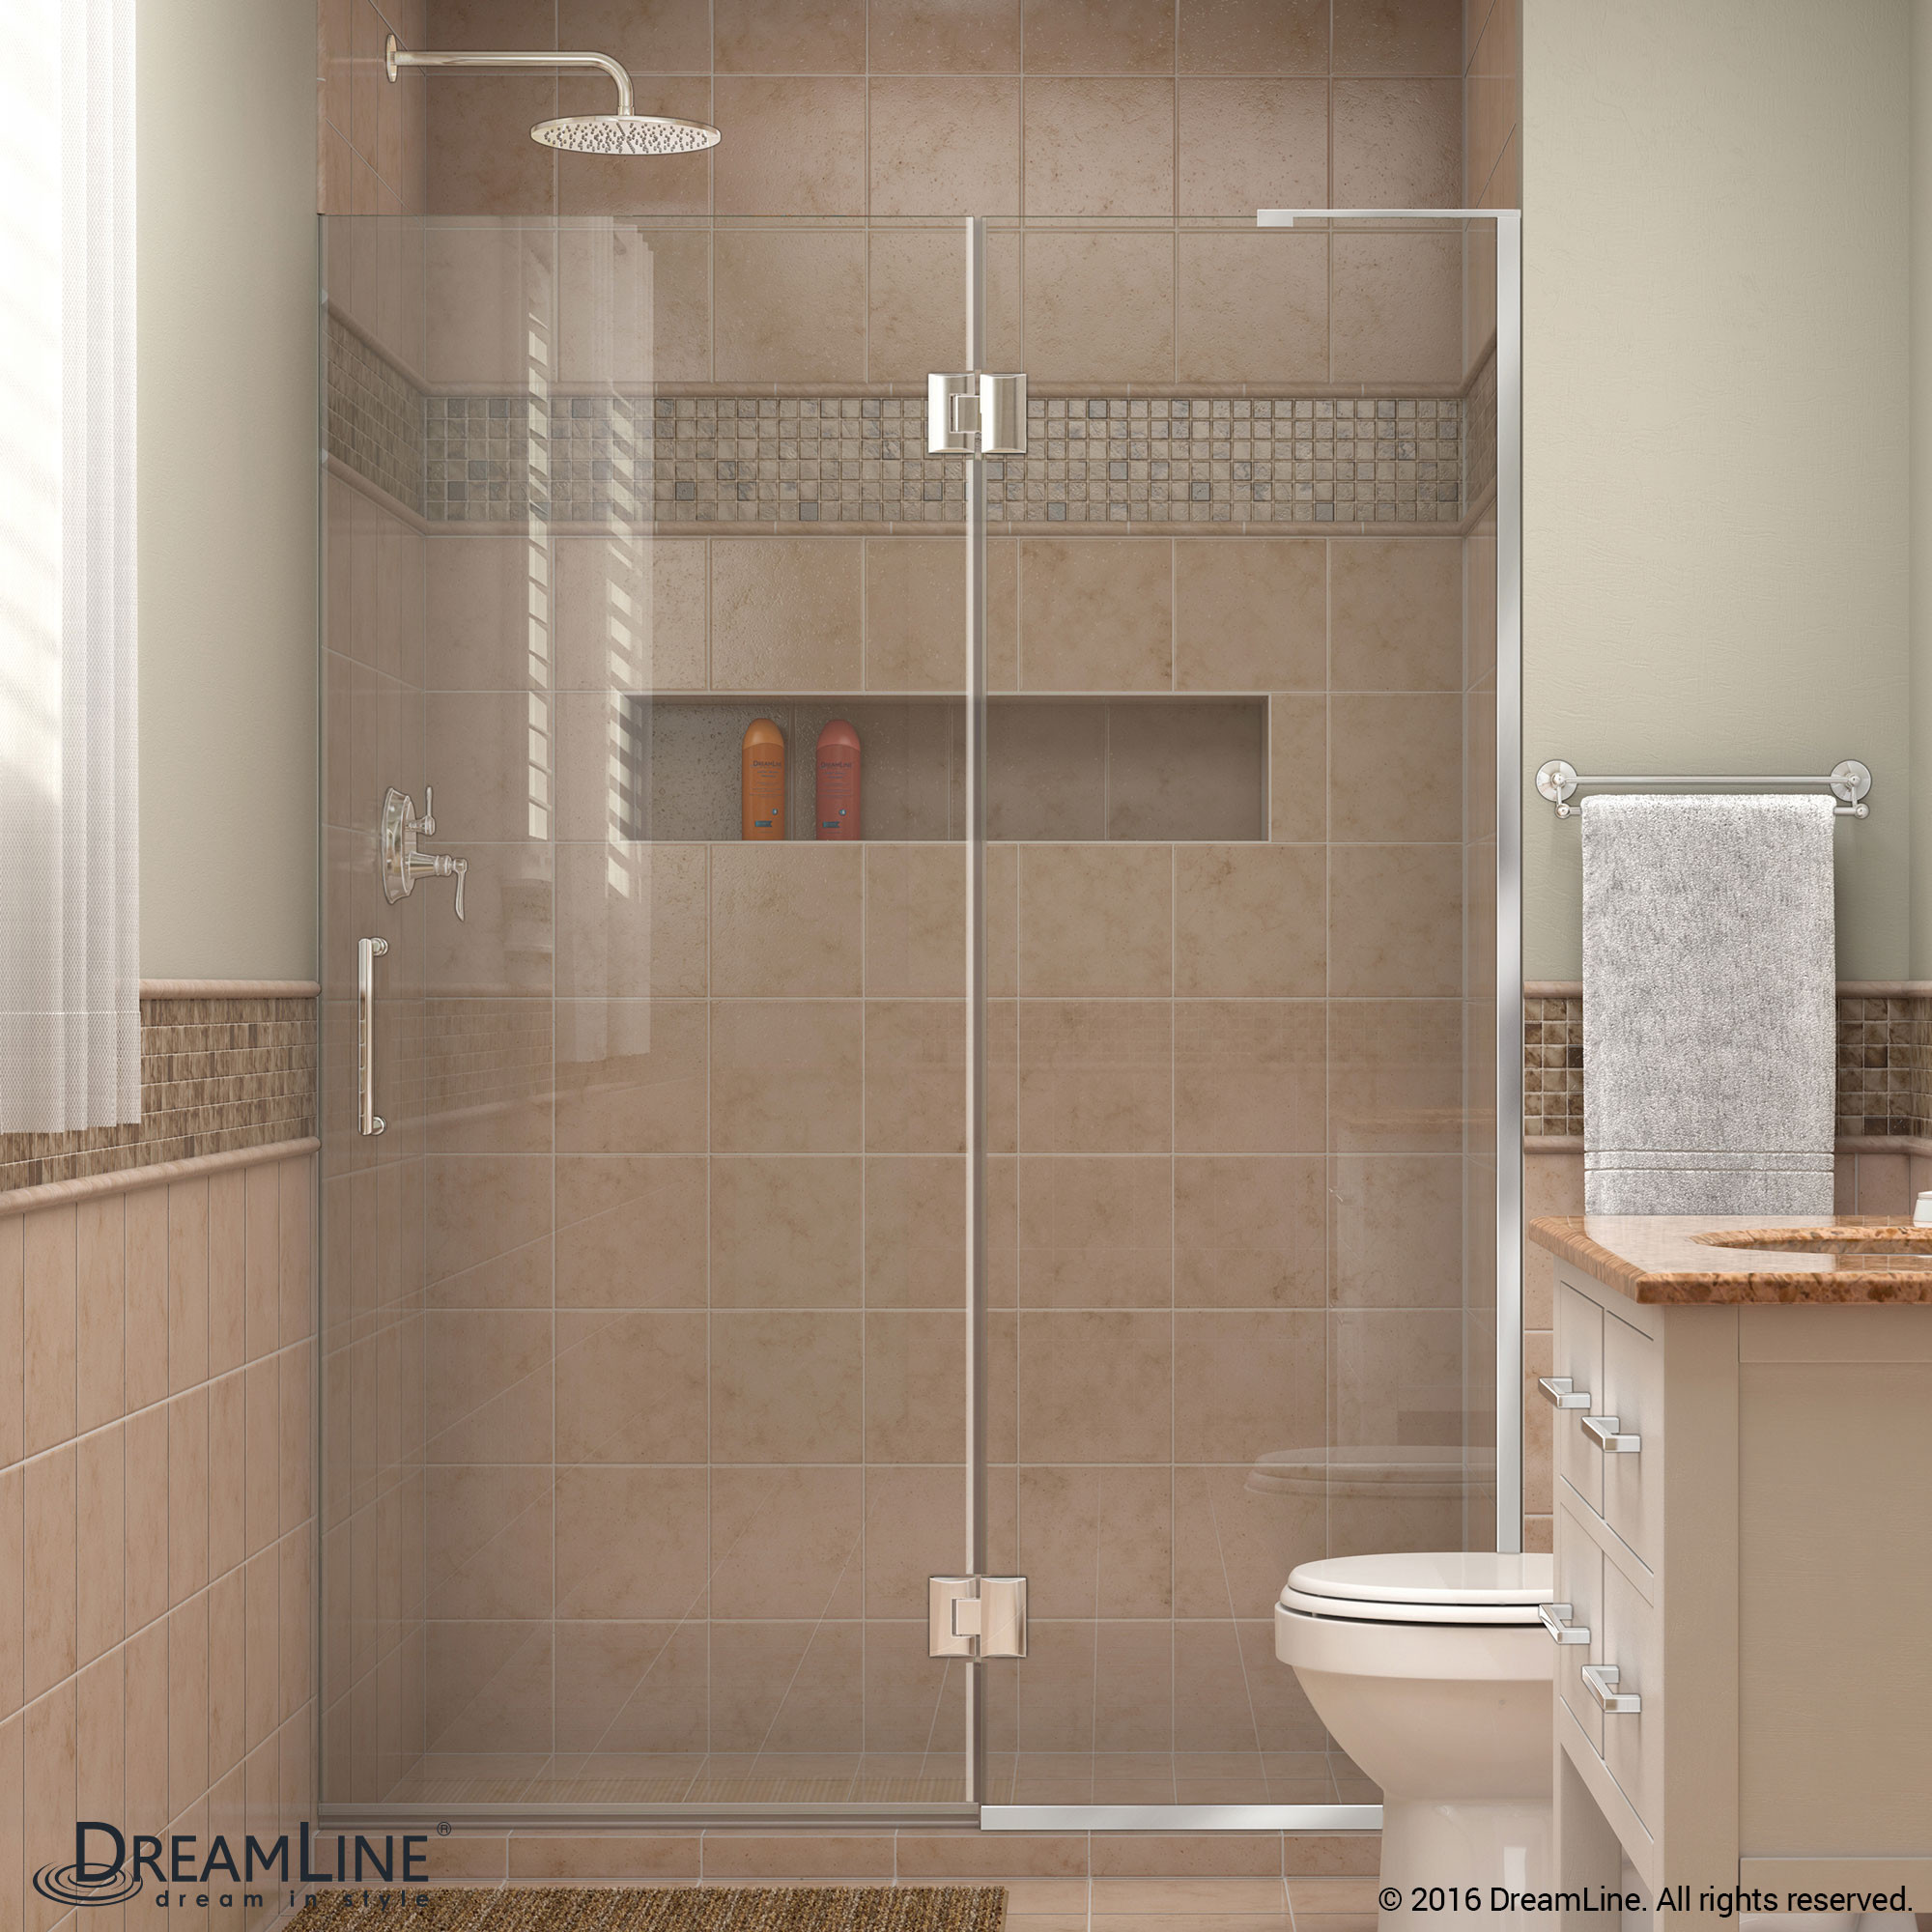 DreamLine D32872R-01 Unidoor-X Hinged Shower Door in Chrome With Right-wall Bracket